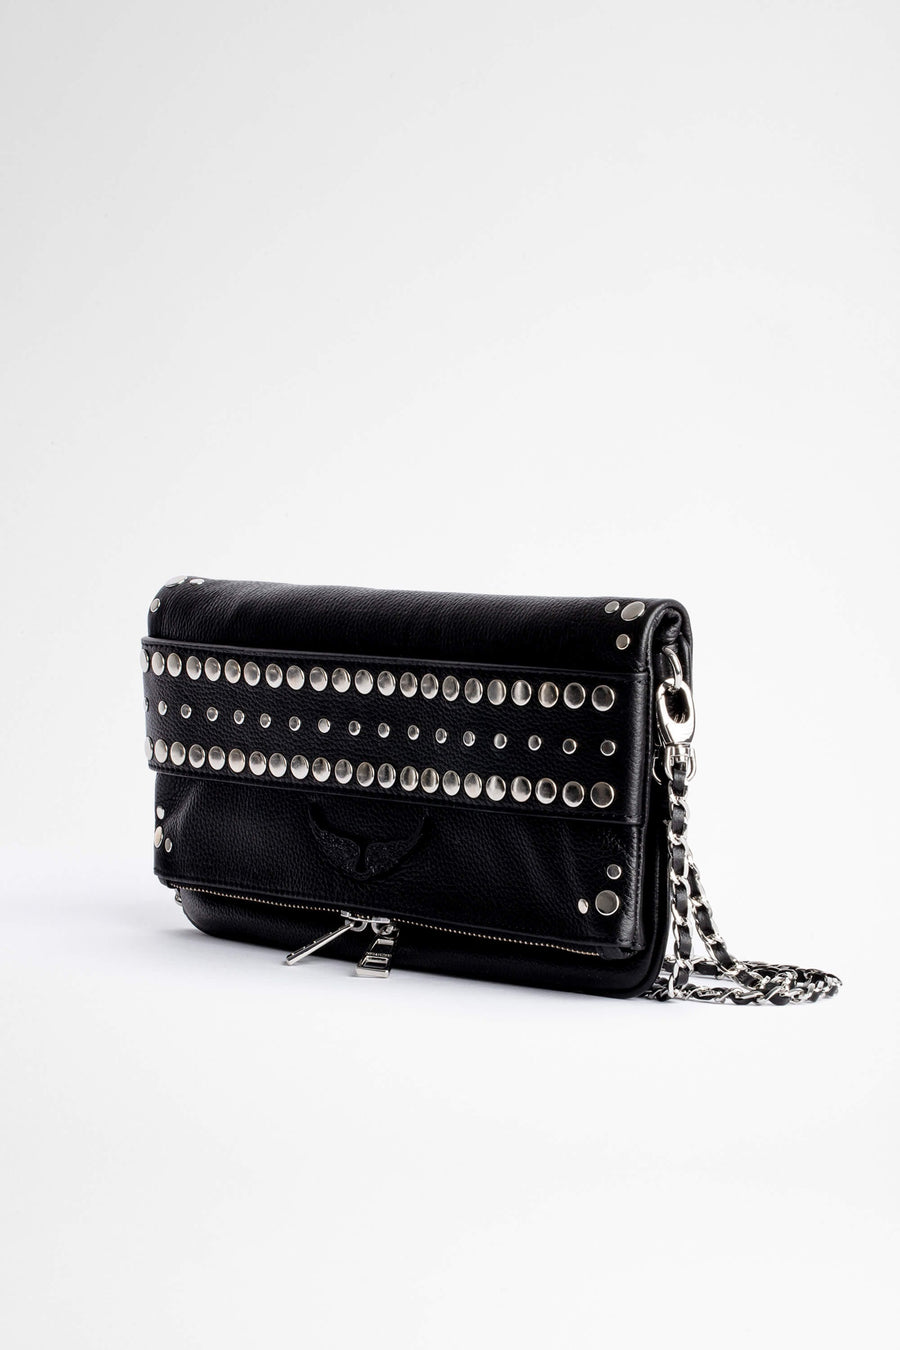 Zadig & Voltaire Rock Studs Outline Clutch